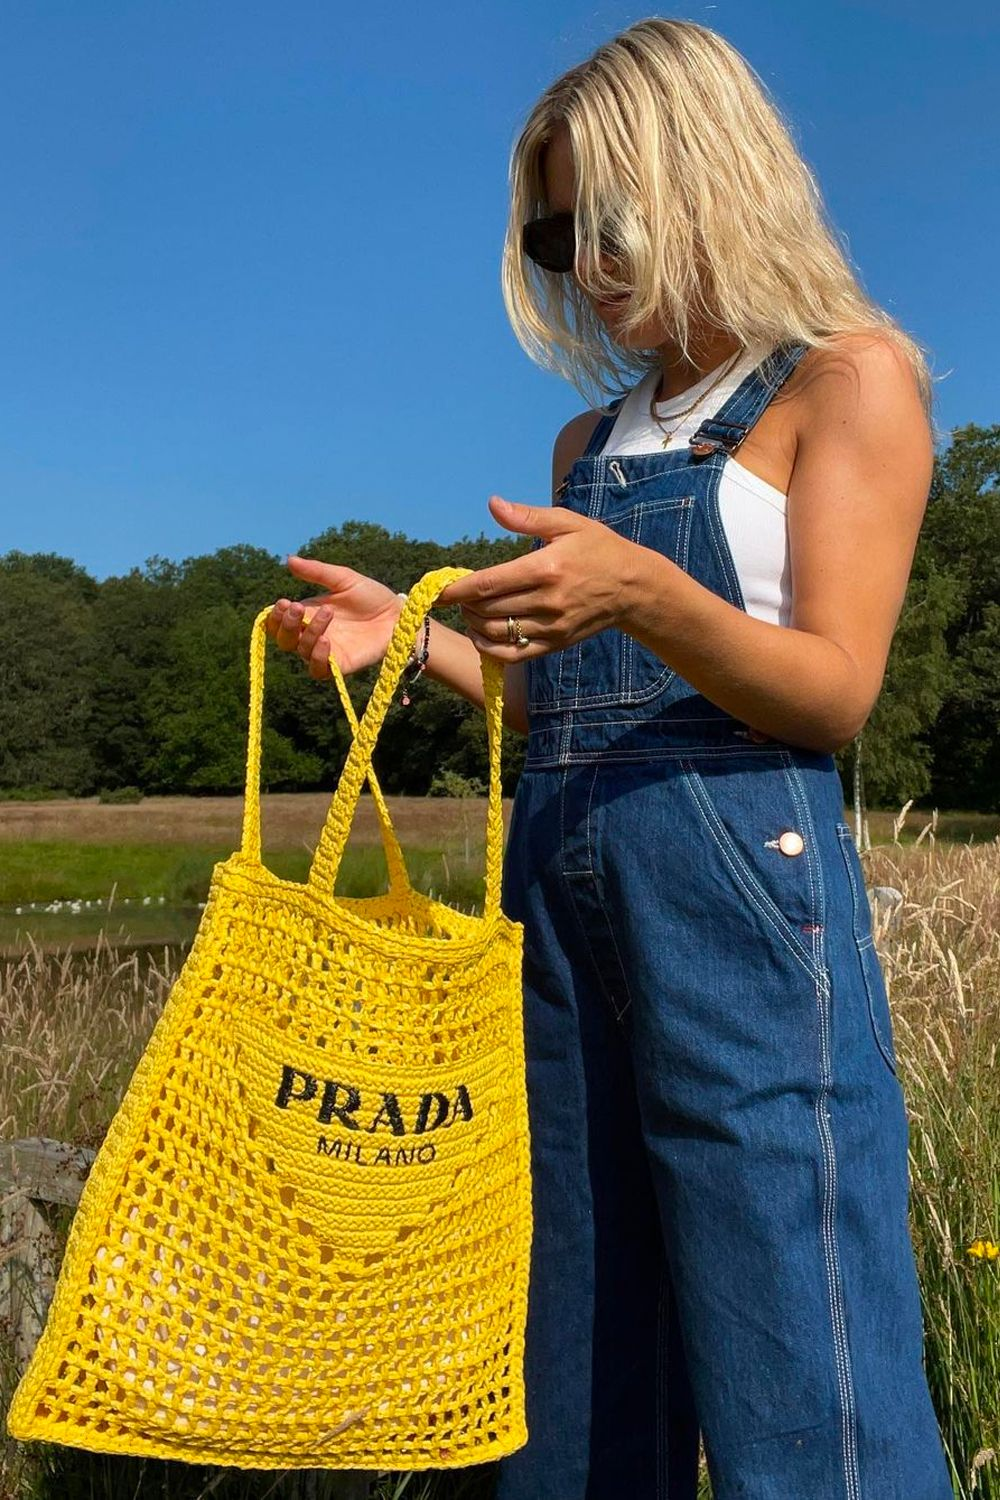 This Summer Bag Is the Most Sought-After Item Right Now